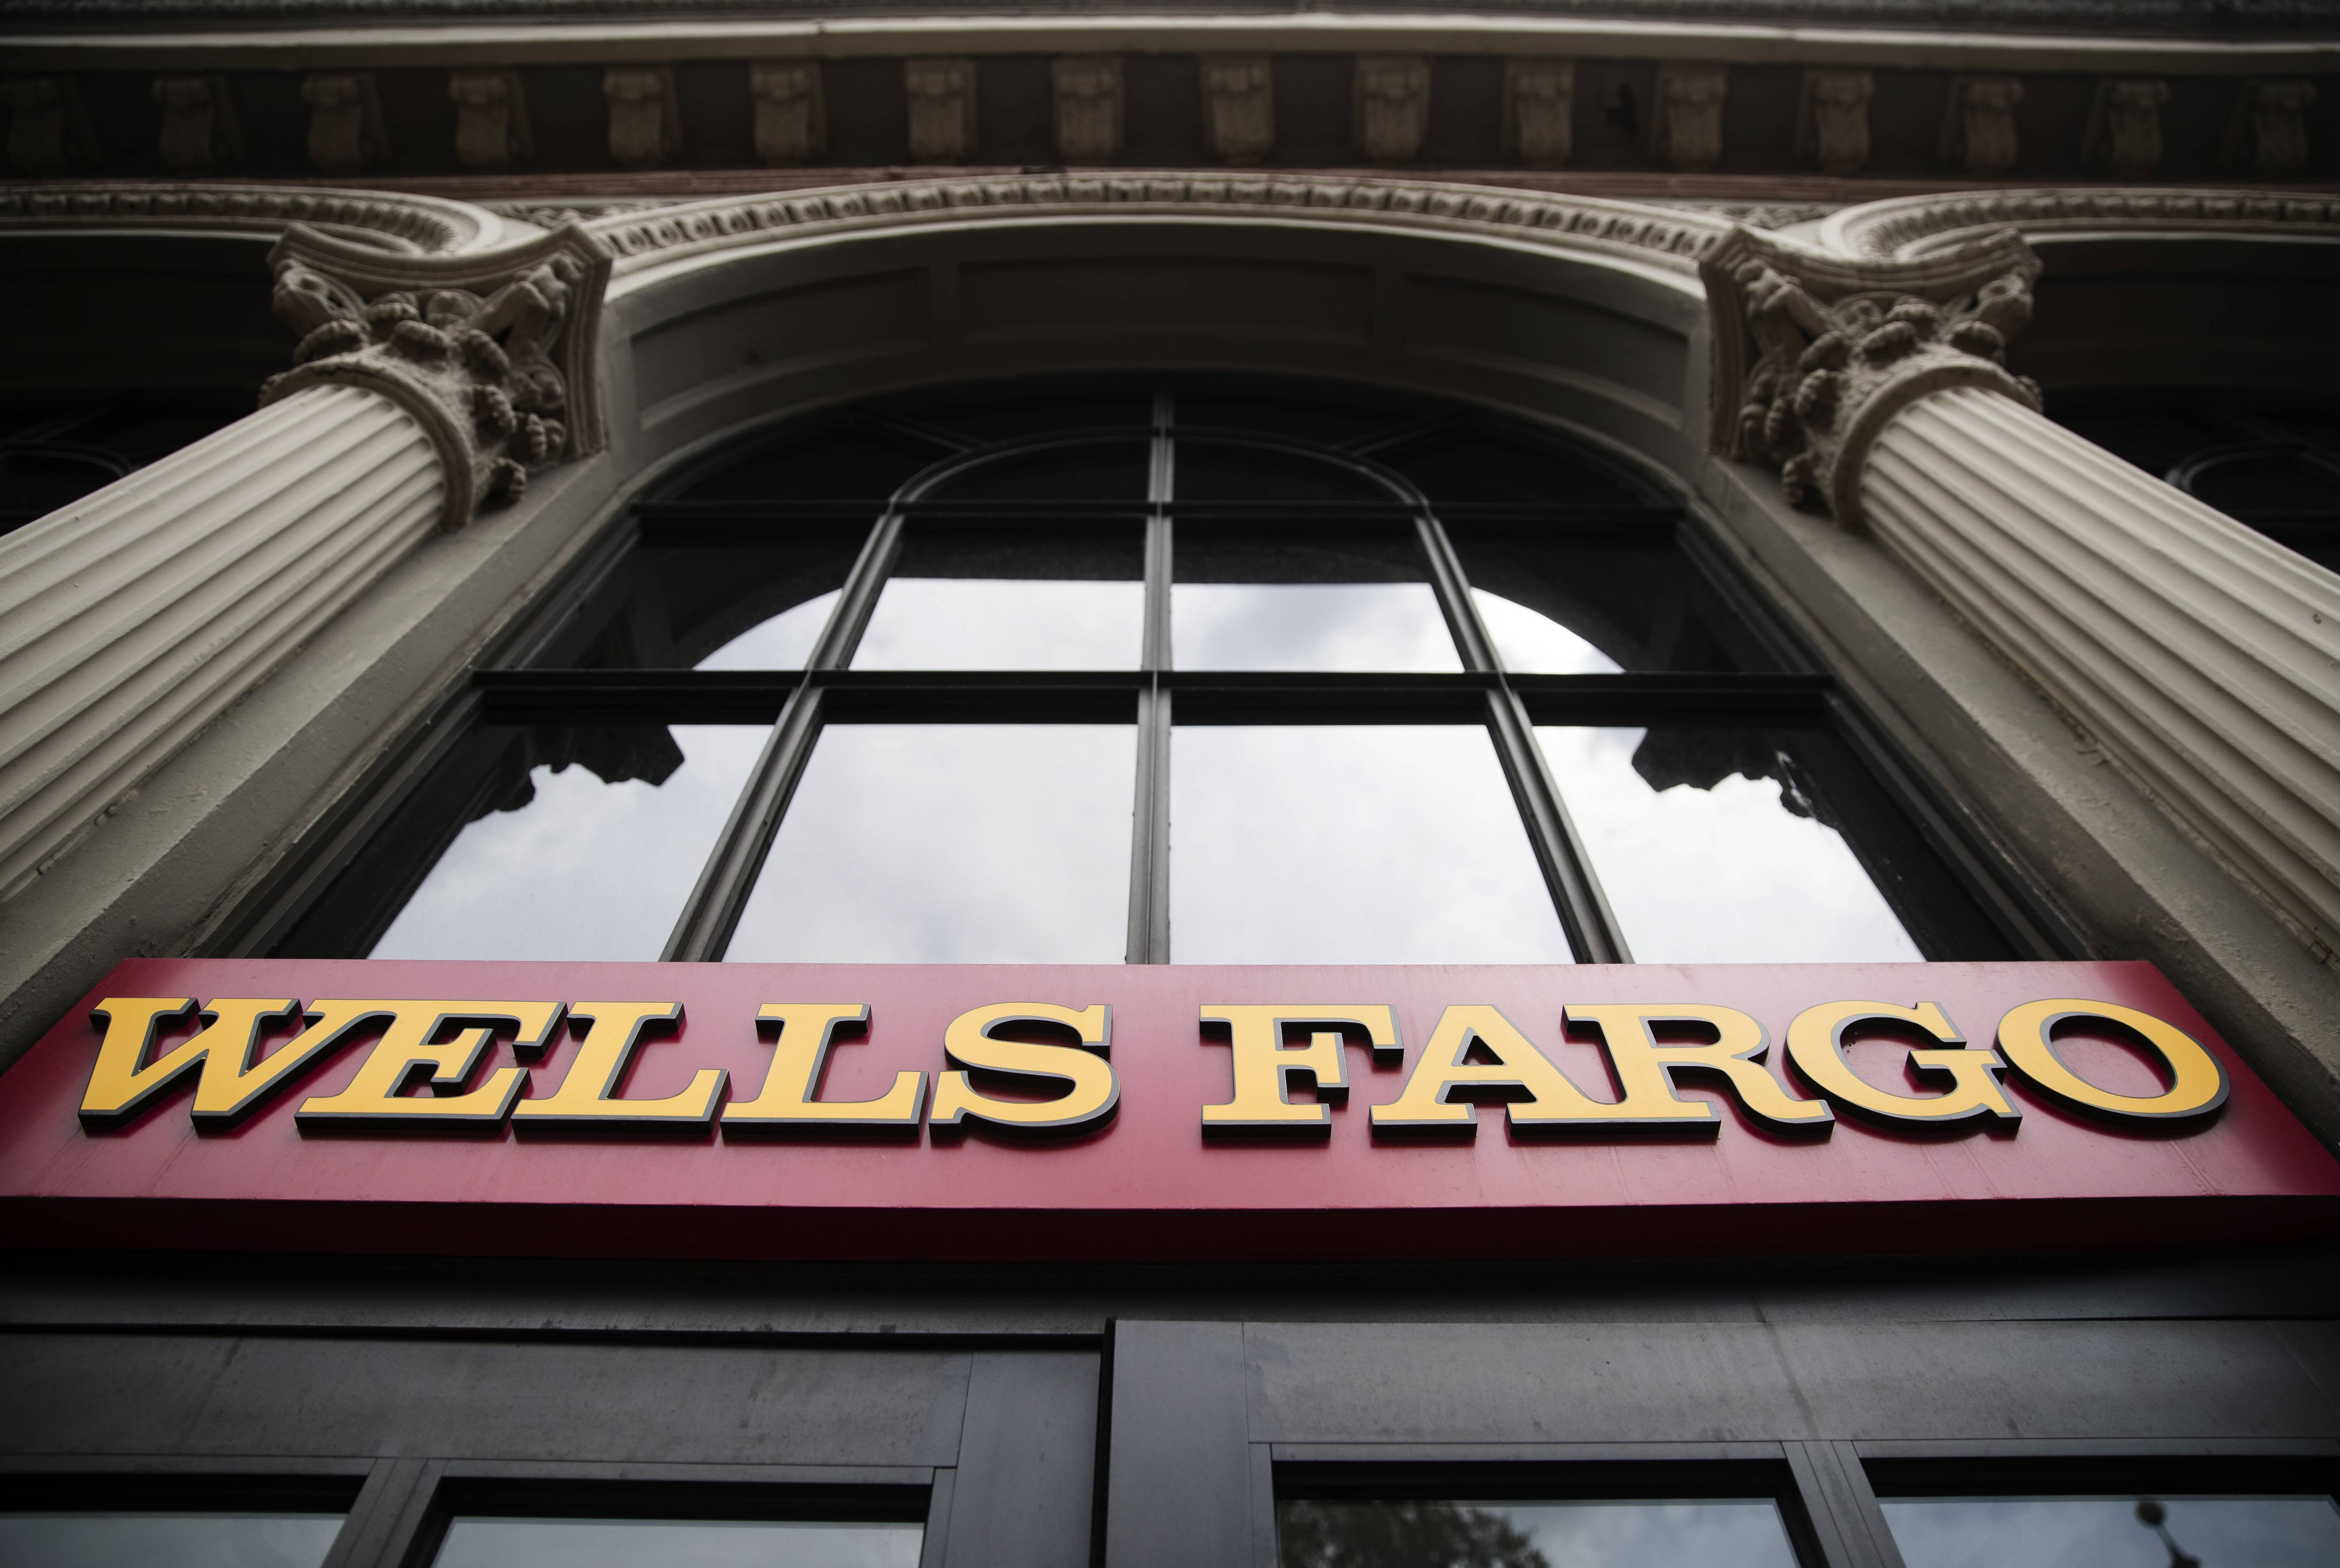 Wells Fargo stands to benefit from the new tax overhaul.